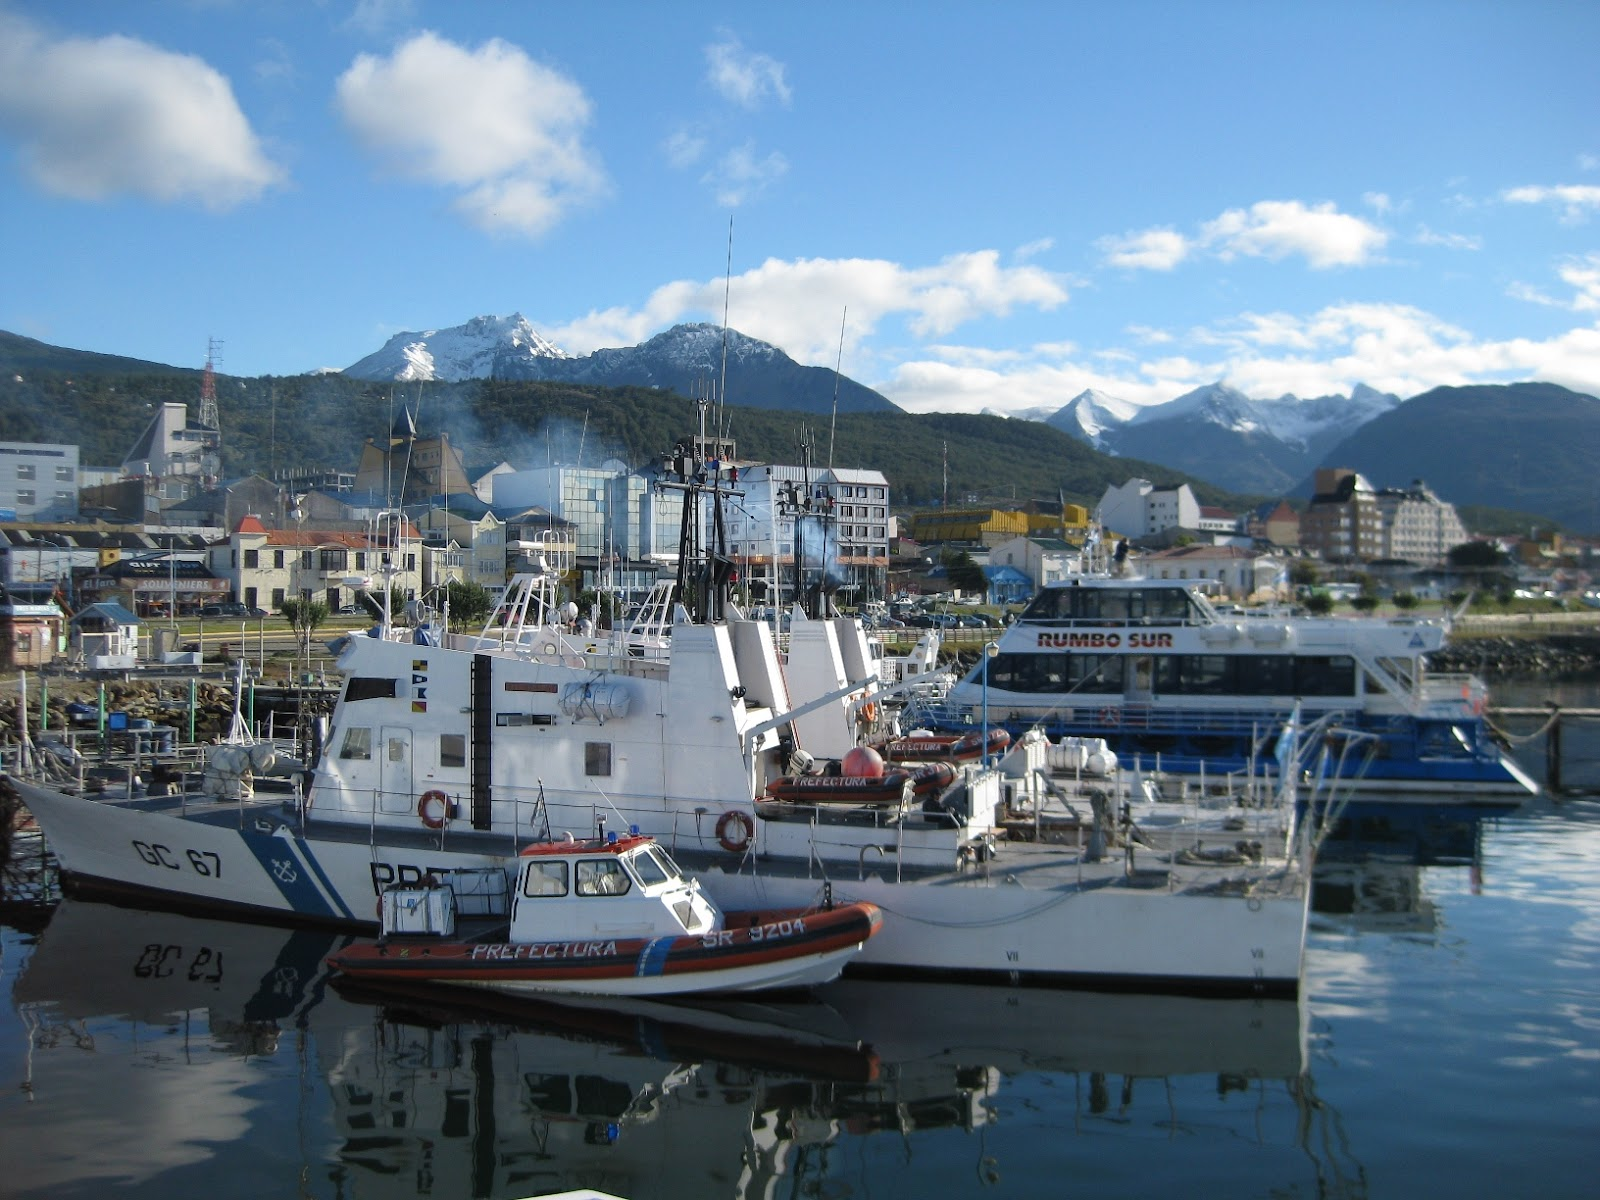 Smooth water, lots of boats for options for daytrips